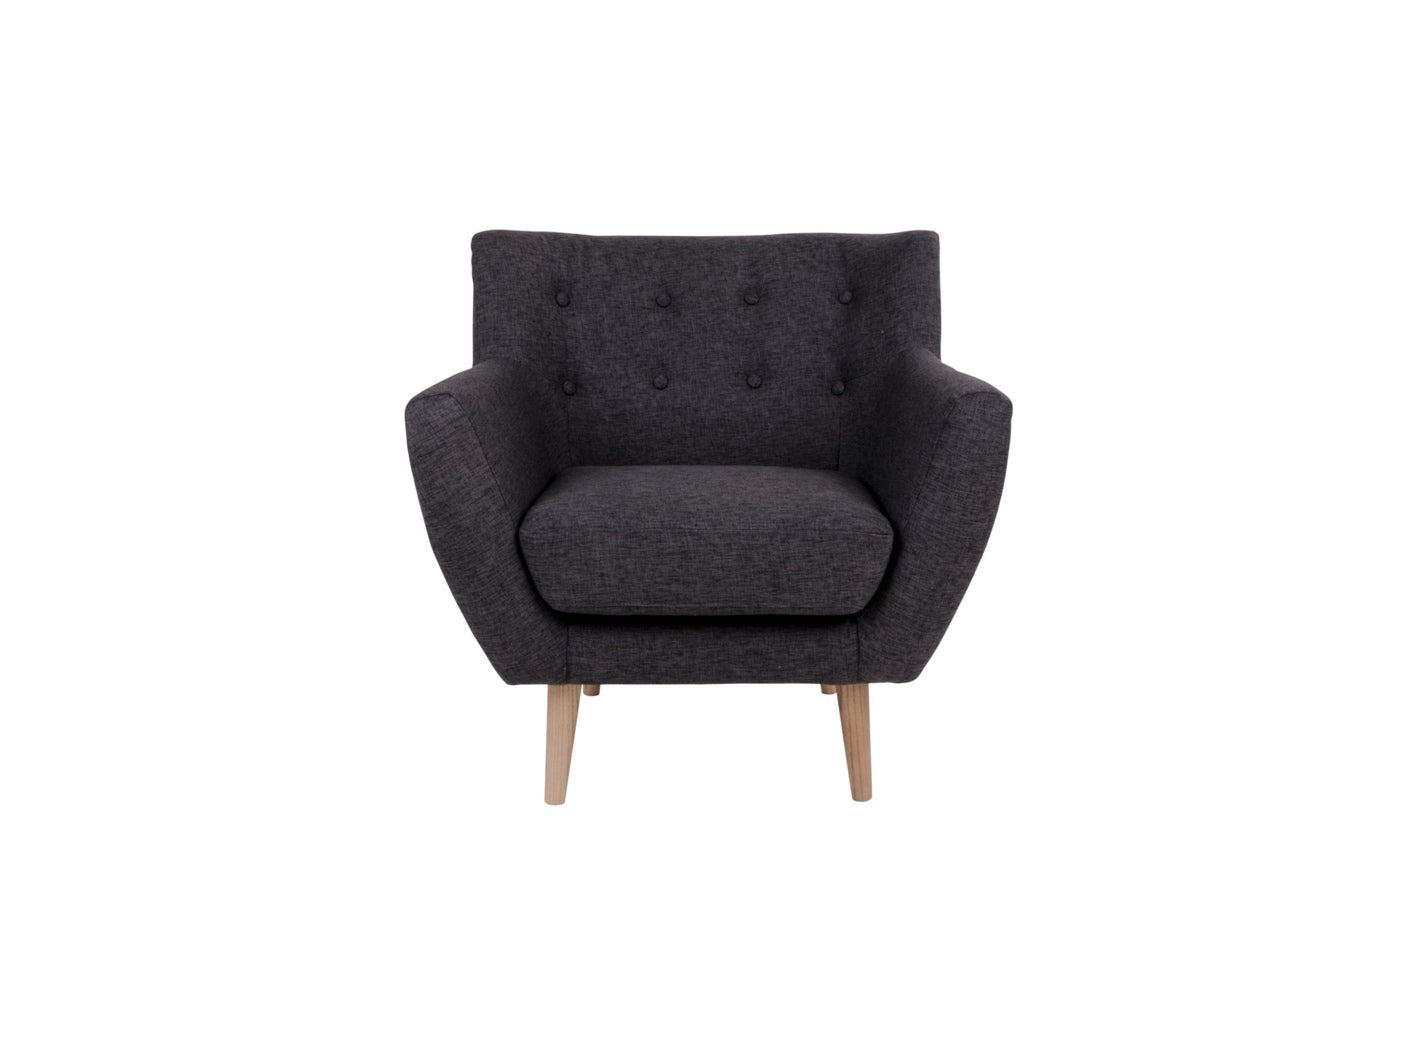 Subscription_OMNI_Clark_Armchair_wooden_legs_design_material_Gray_furniture_office_comfortable_elegant_back_cushion